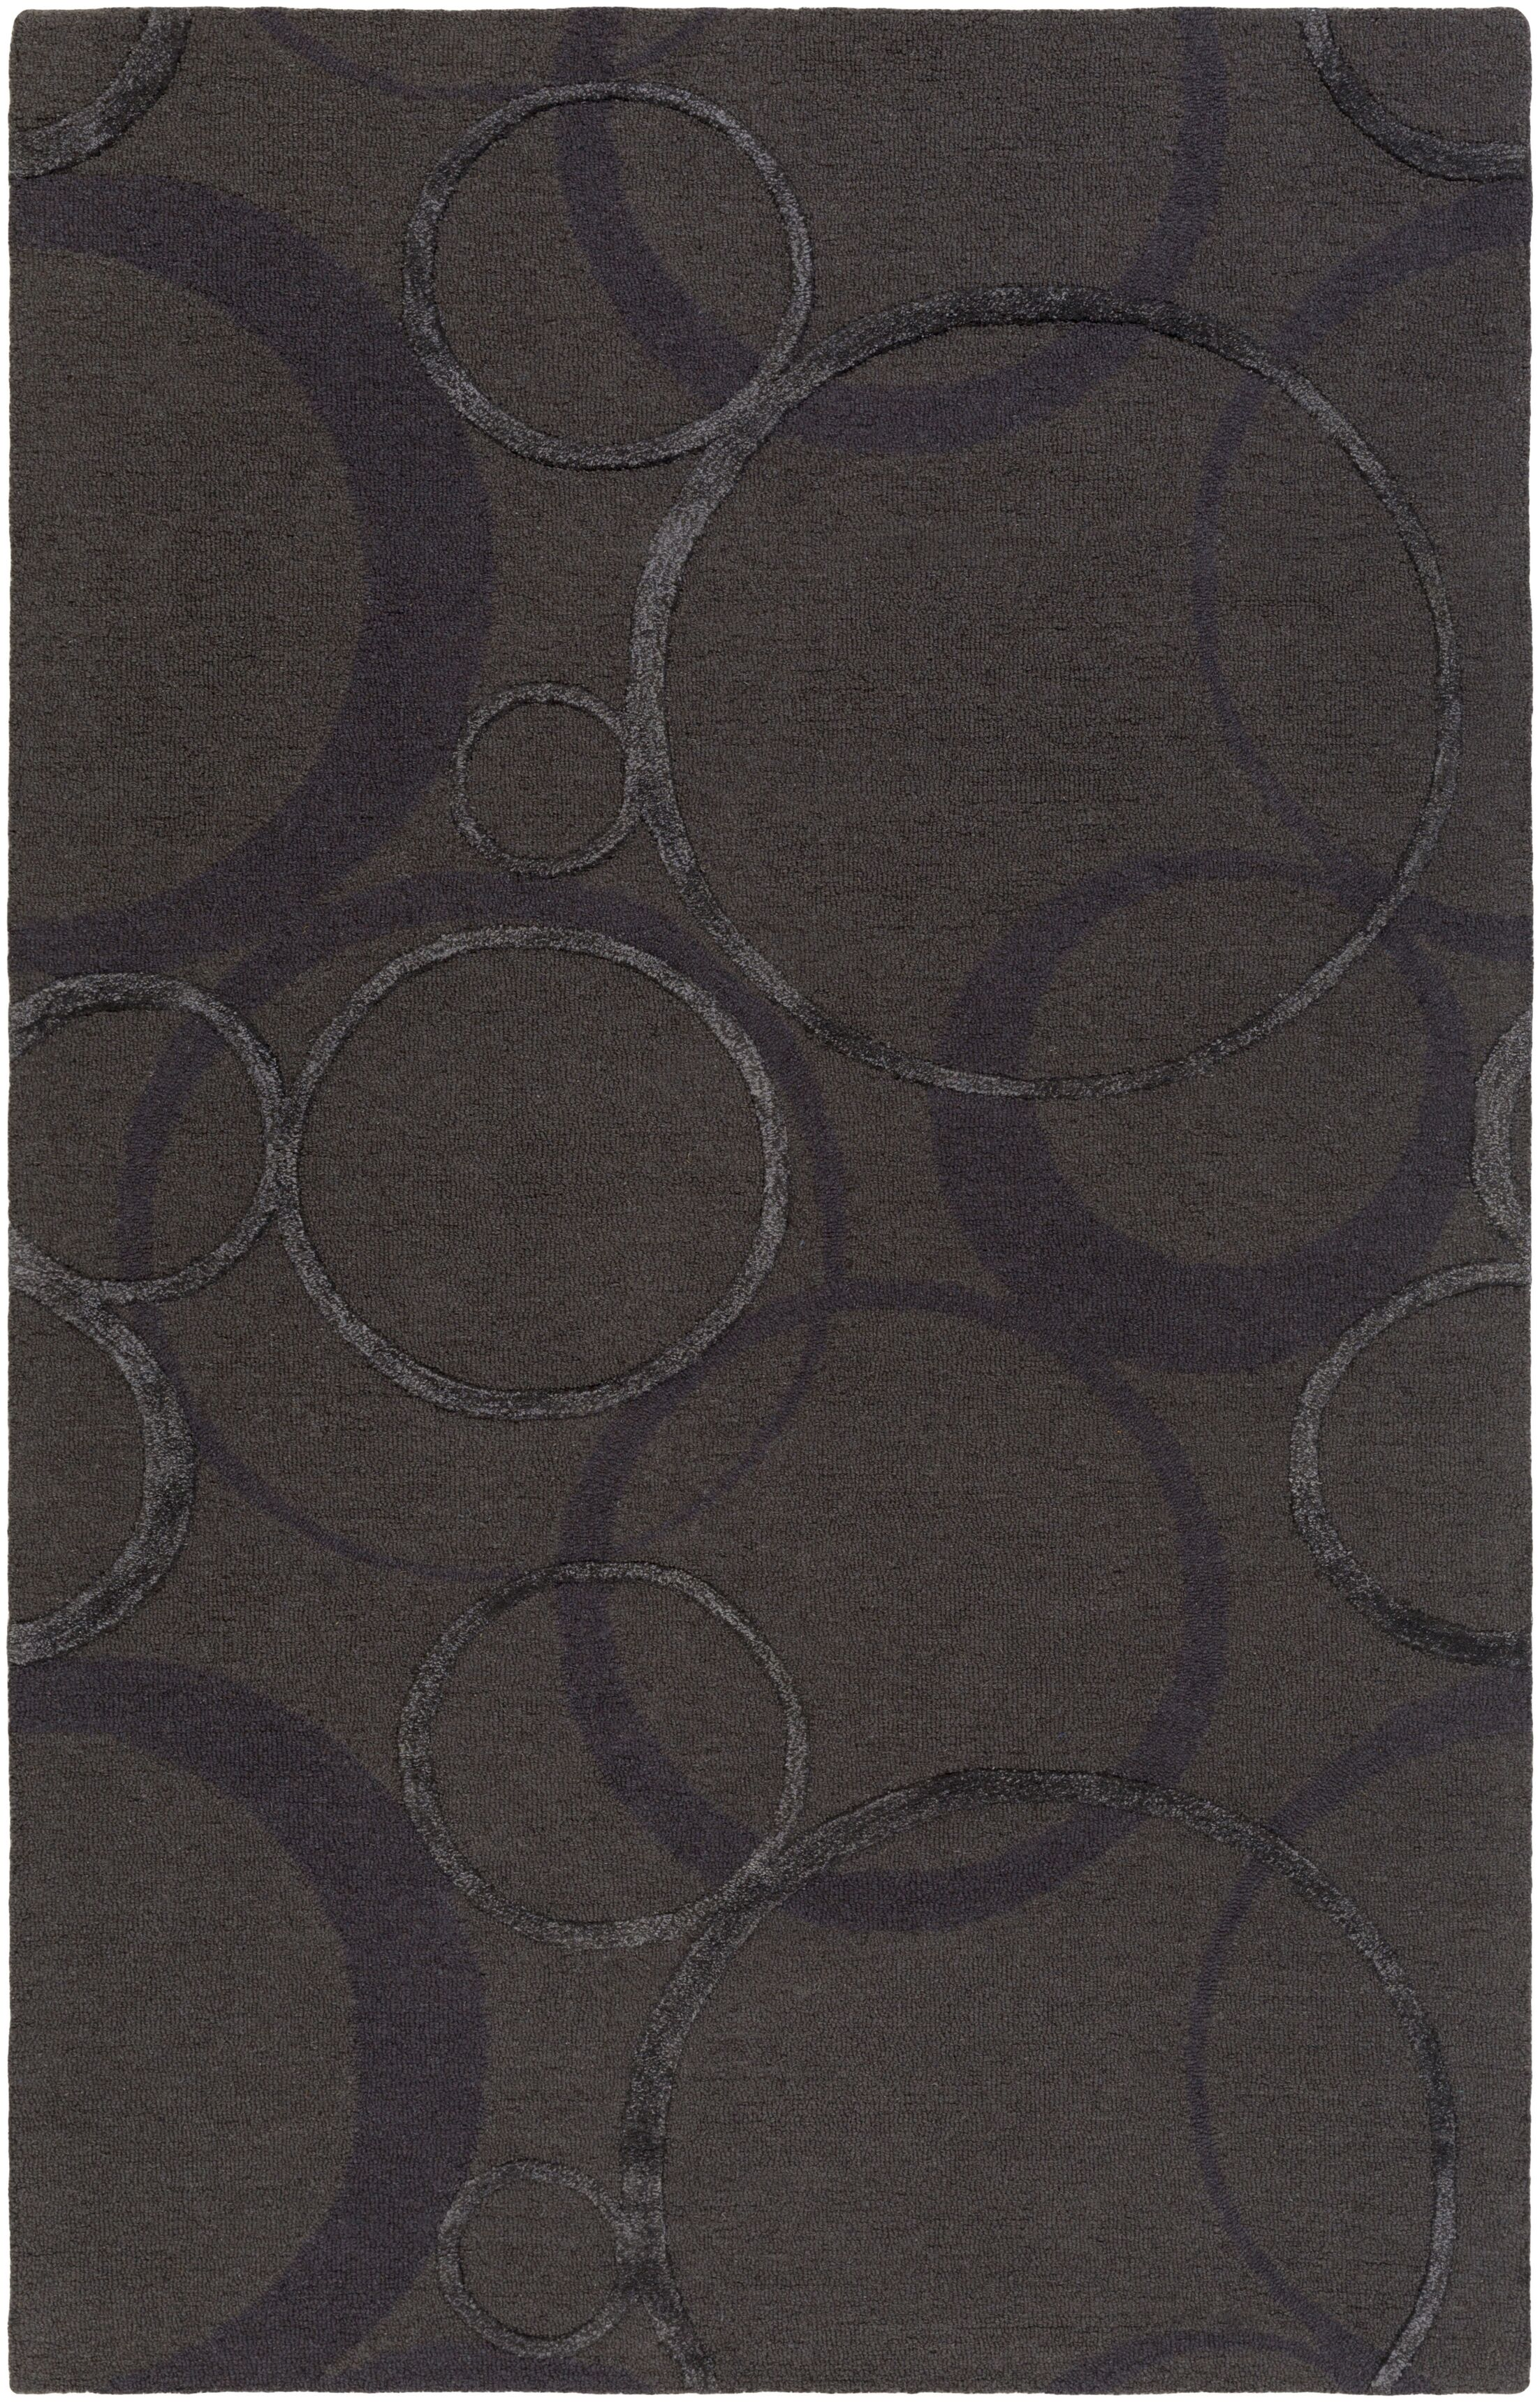 Moyes Hand-Tufted Charcoal Area Rug Rug Size: Rectangle 4' x 6'